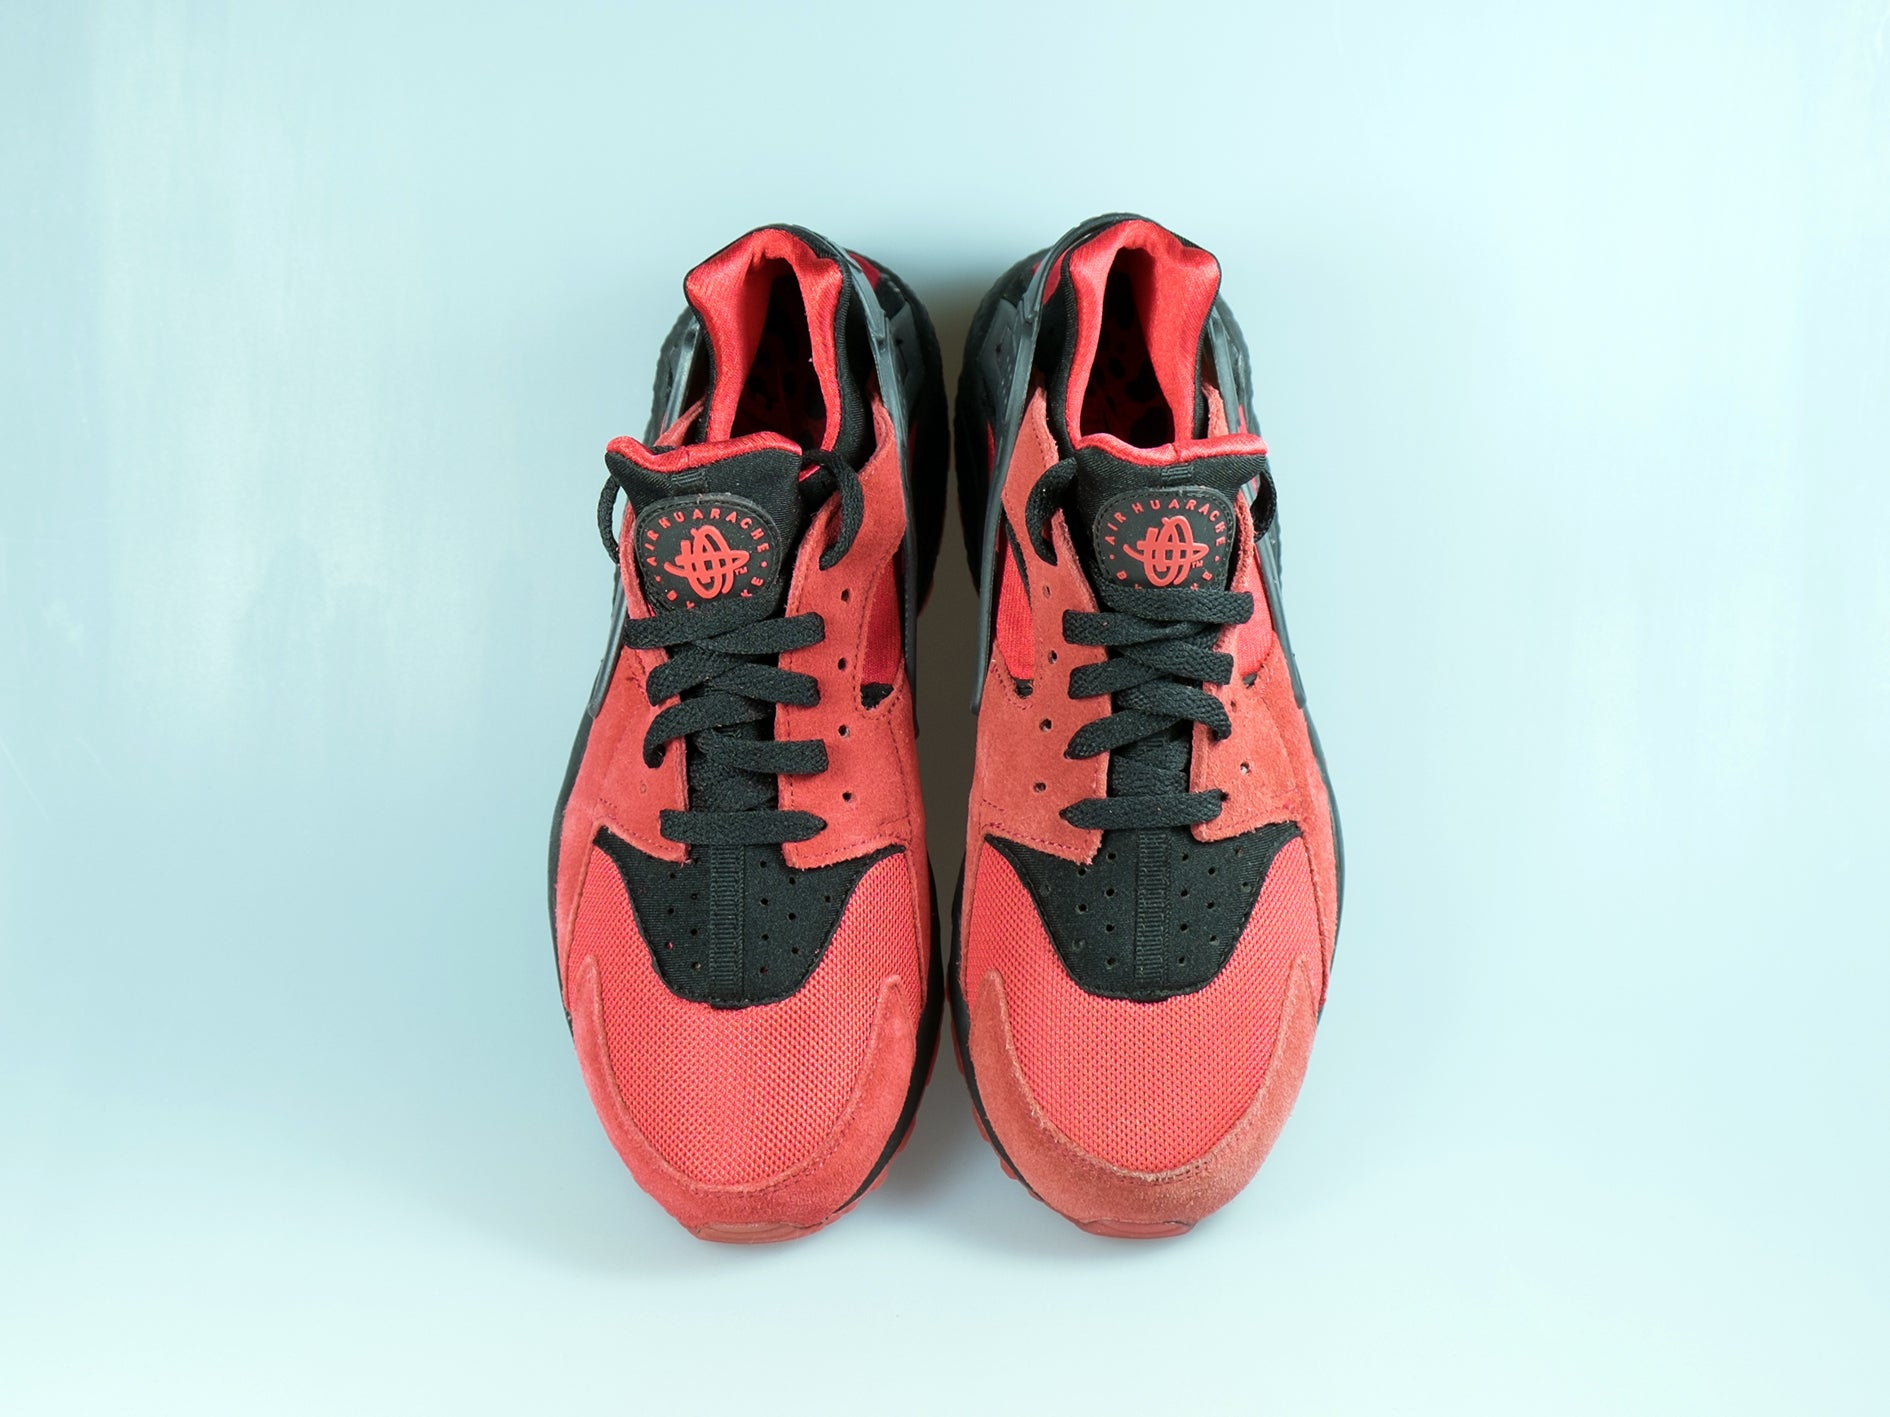 wholesale dealer 3d7eb 70a00 Buy Discount Nike Air Huarache University Red Black 700878 600